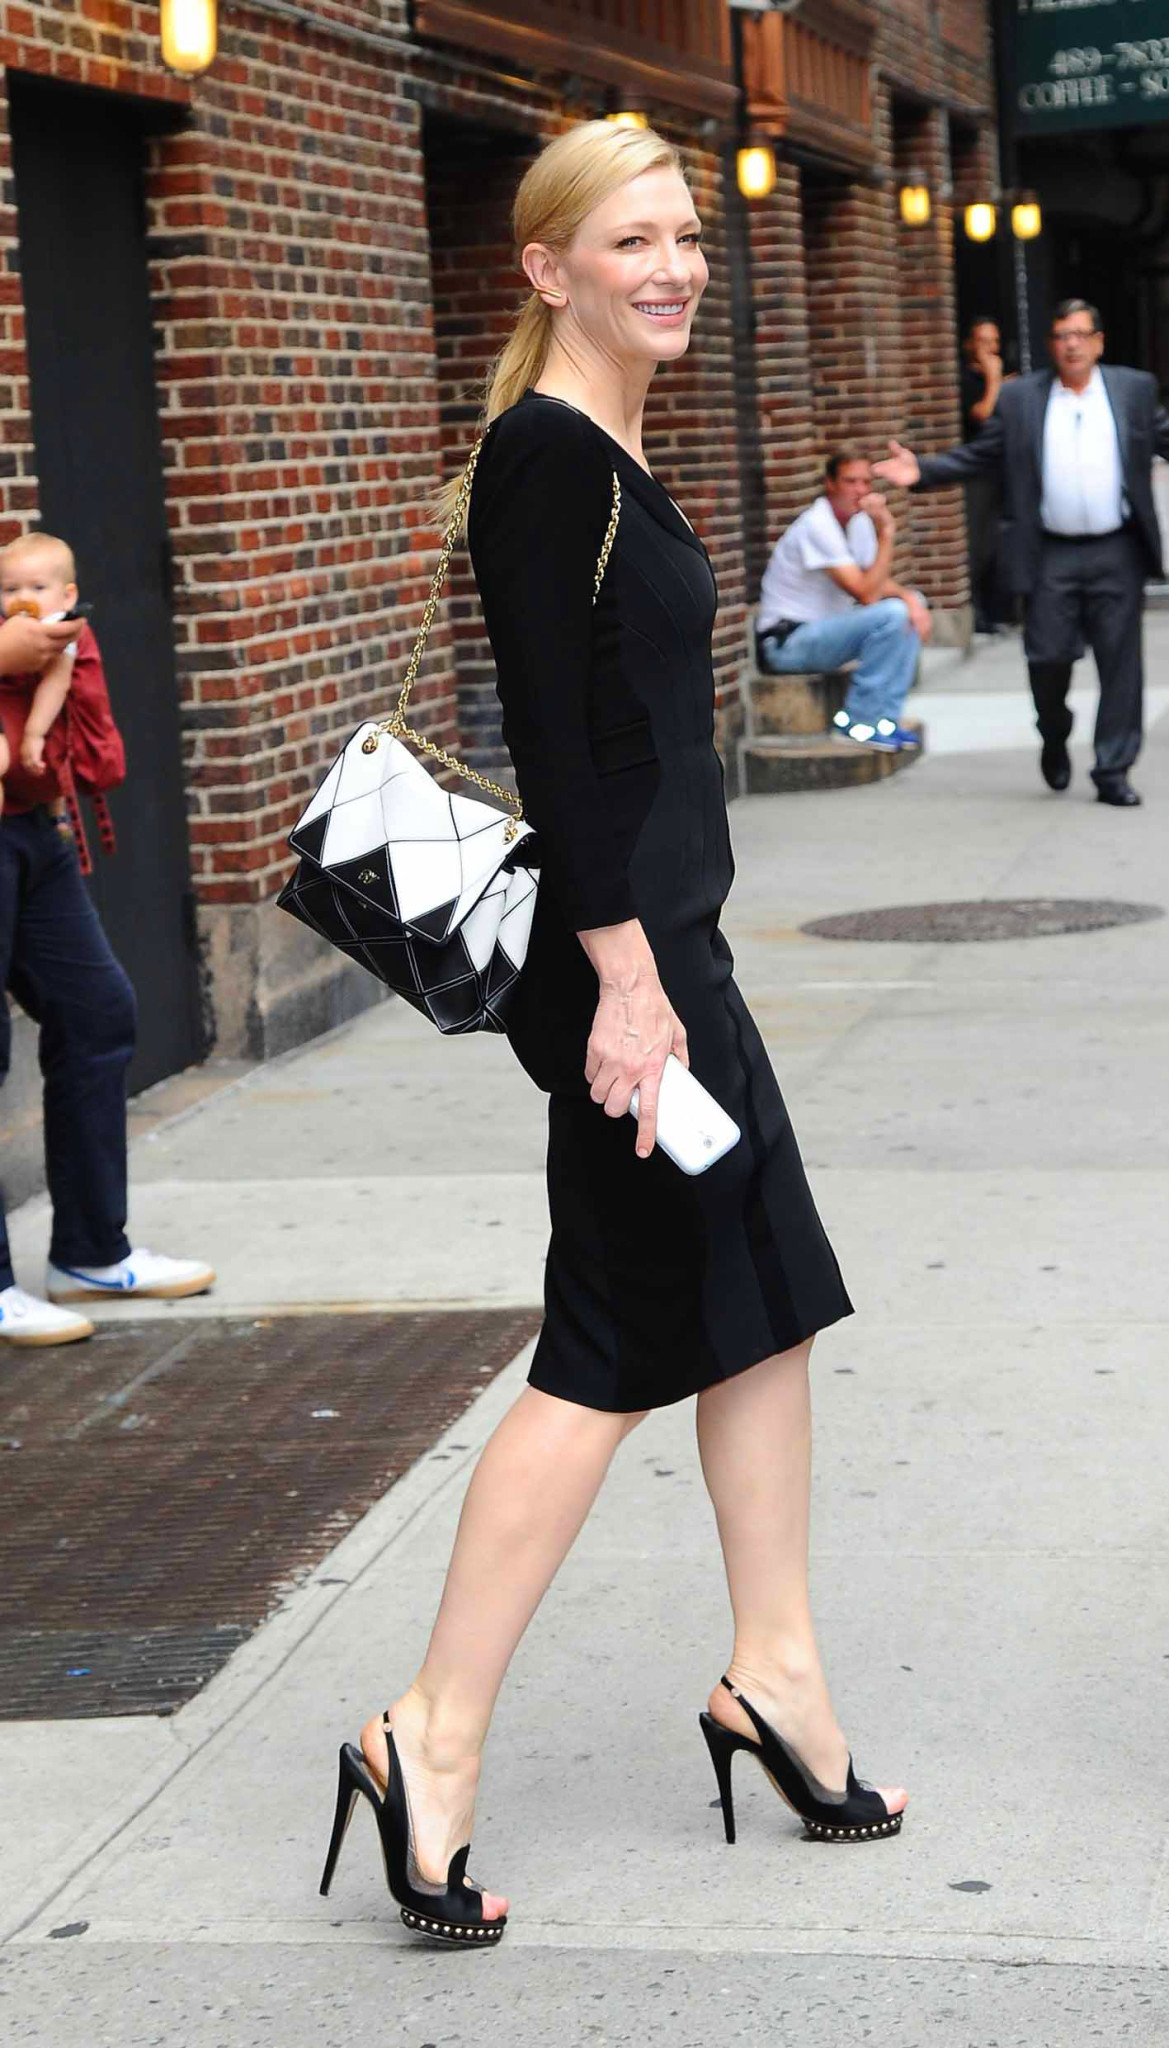 Cate Blanchett out and about in NYC Pictured: Cate Blanchett Ref: SPL582671 230713 Picture by: Splash News Splash News and Pictures Los Angeles:310-821-2666 New York: 212-619-2666 London: 870-934-2666 photodesk@splashnews.com